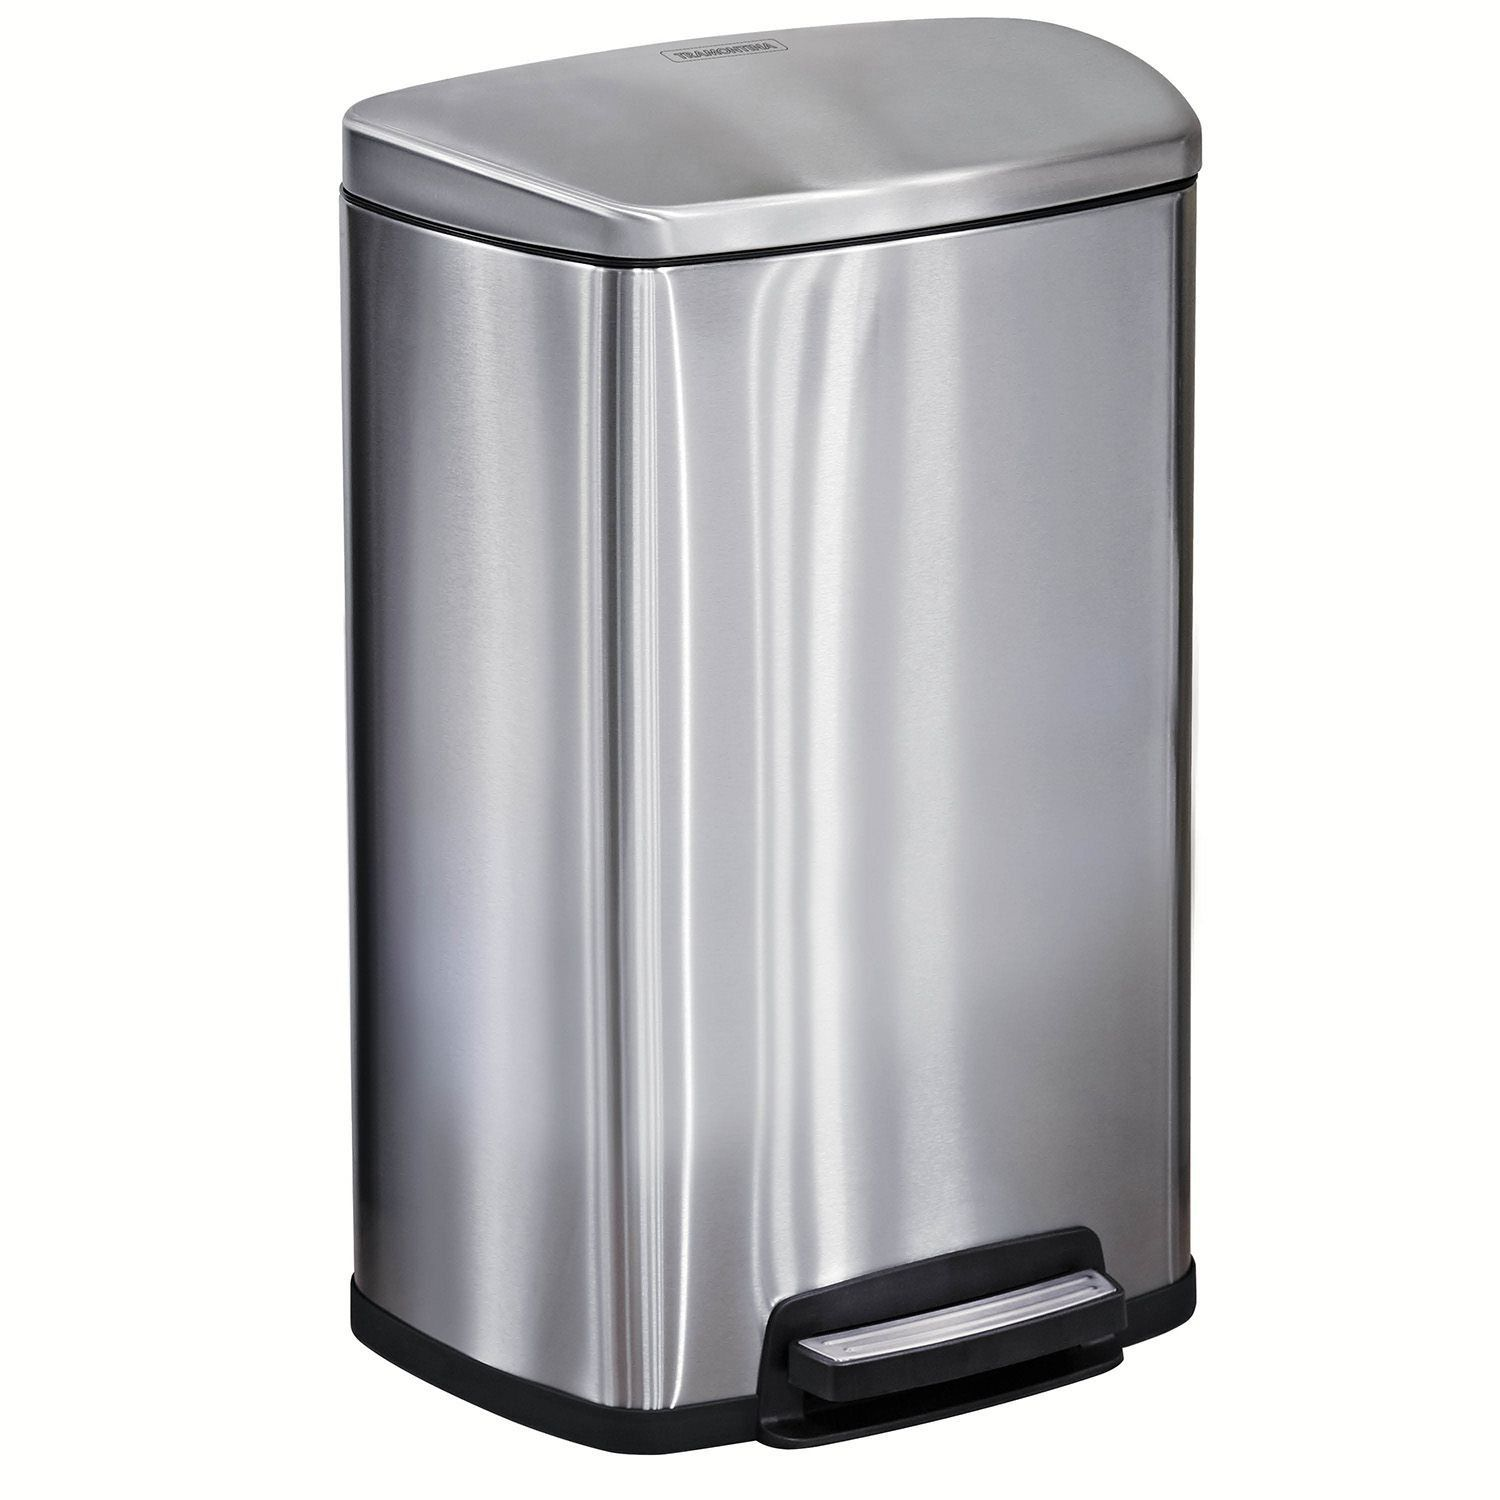 Robot Check Trash Can Kitchen Trash Cans Canning